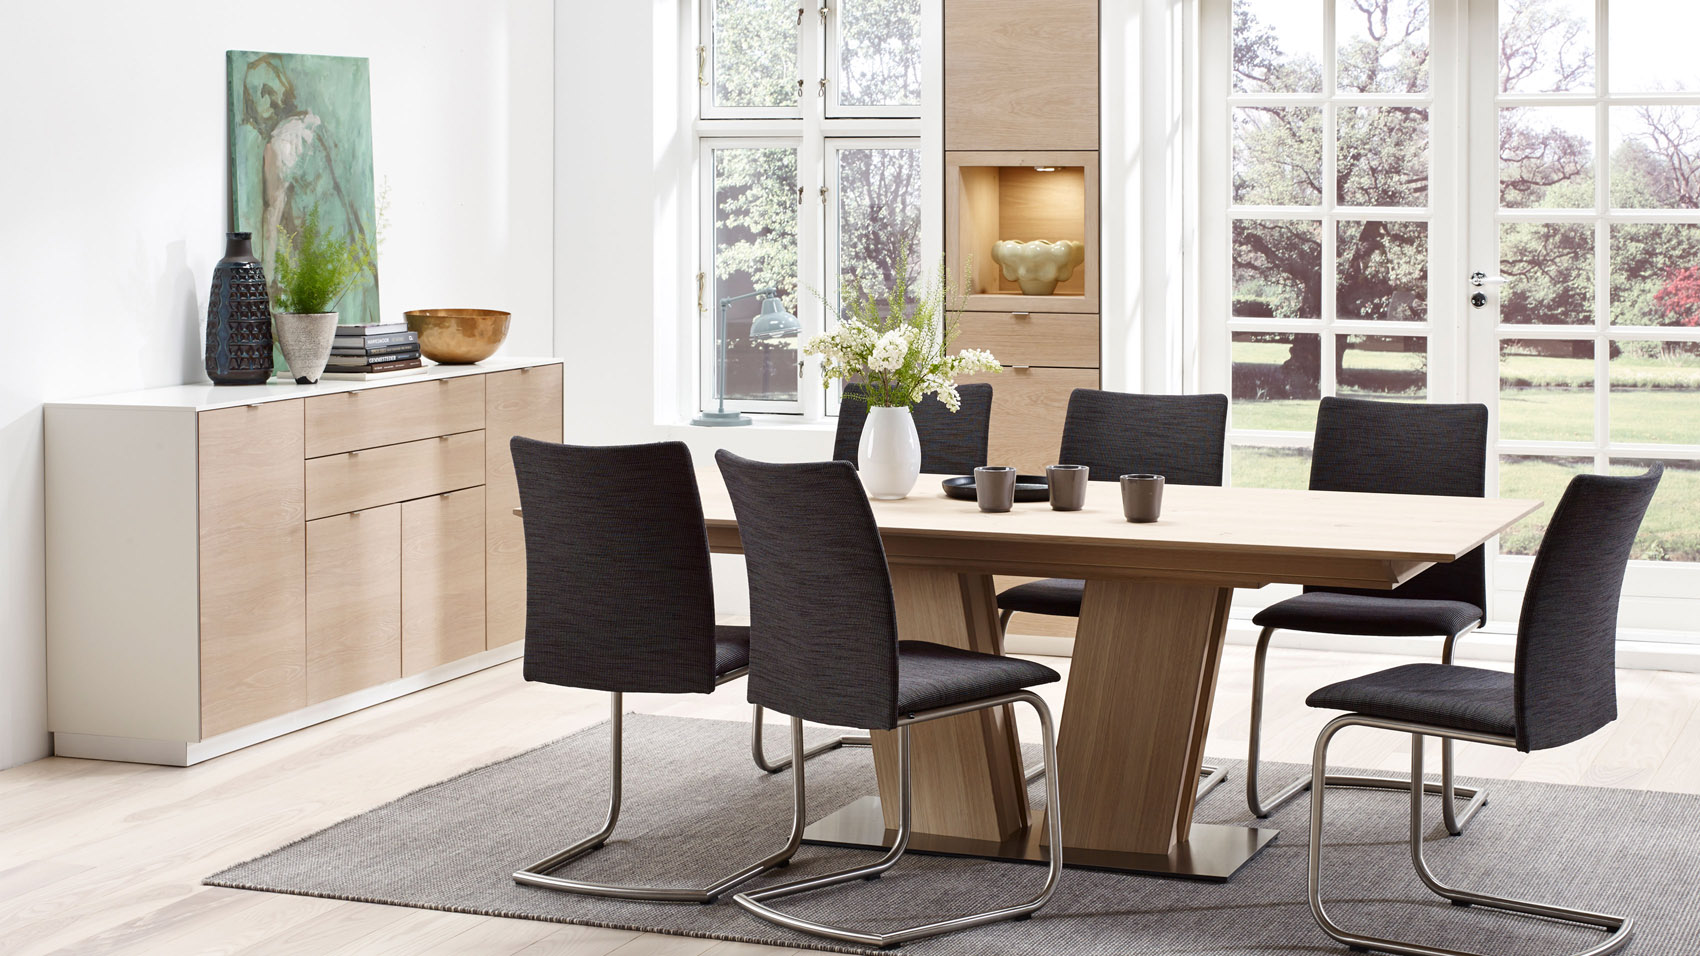 Dark Grey Fabric Chairs On Metal Frames Add Life To A Light Open Concept Dining